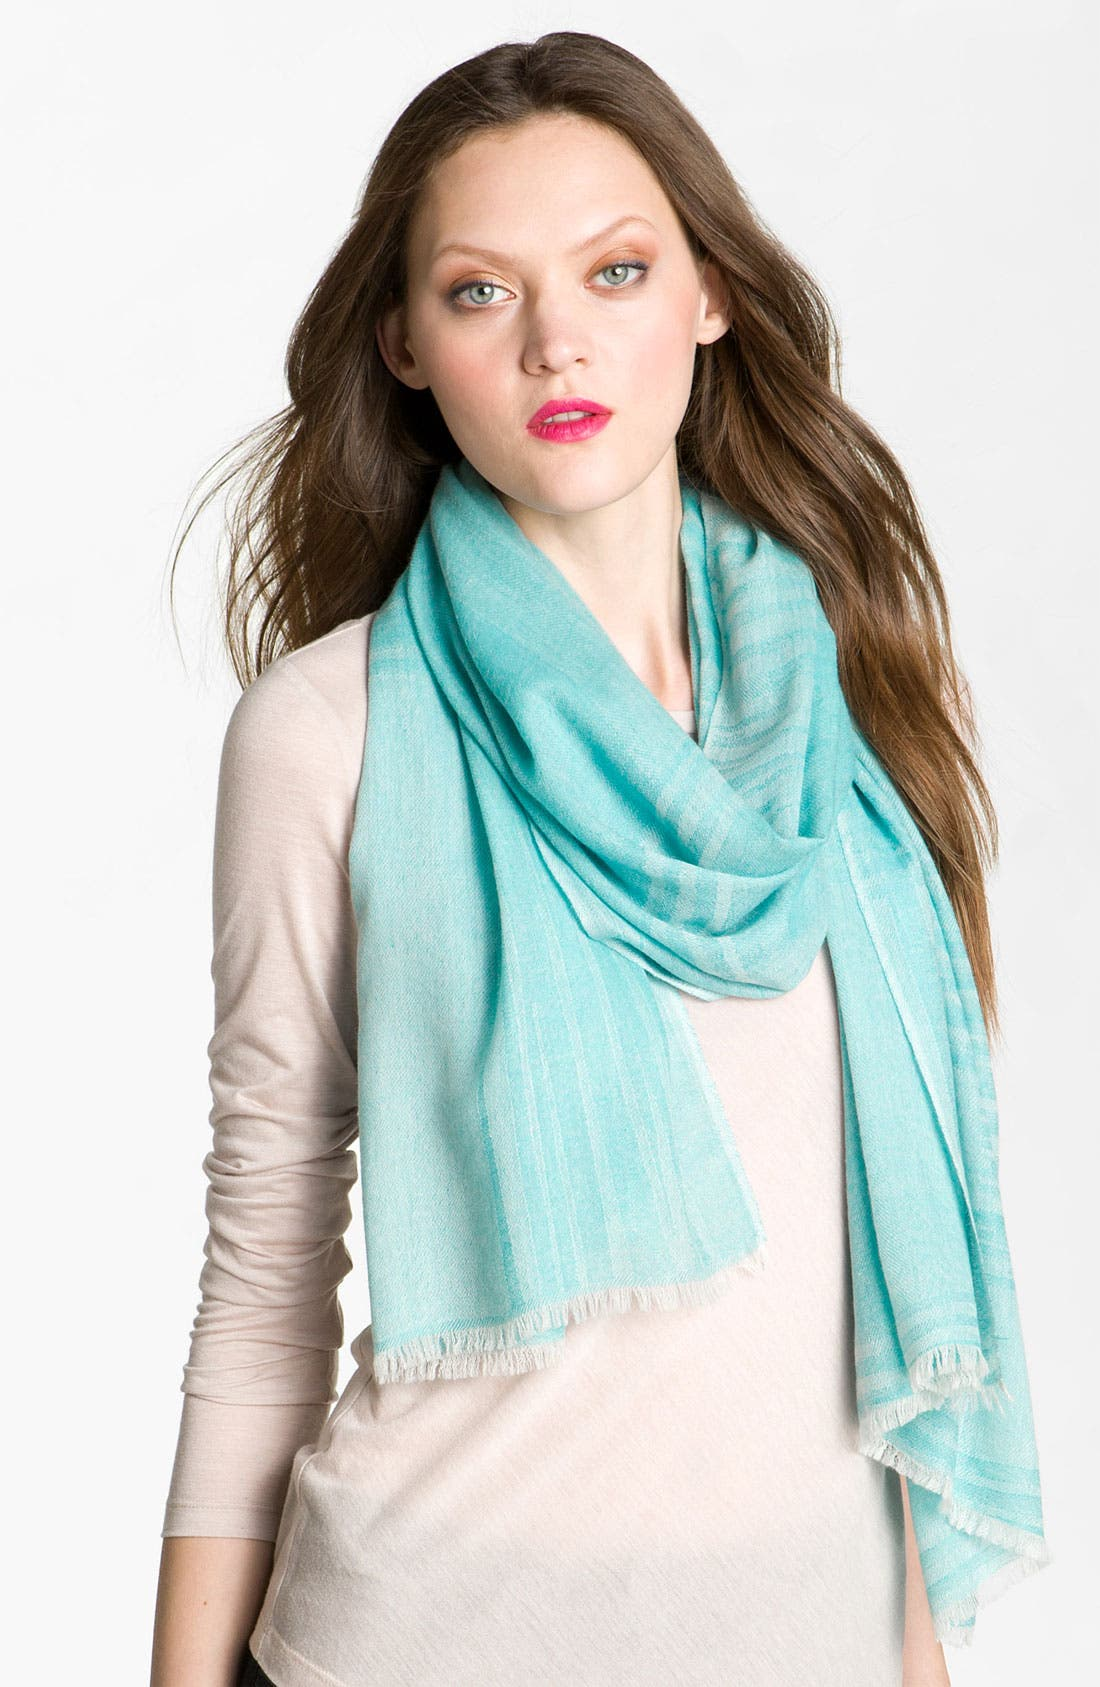 Alternate Image 1 Selected - Nordstrom Collection 'Painted' Jacquard Cashmere Scarf